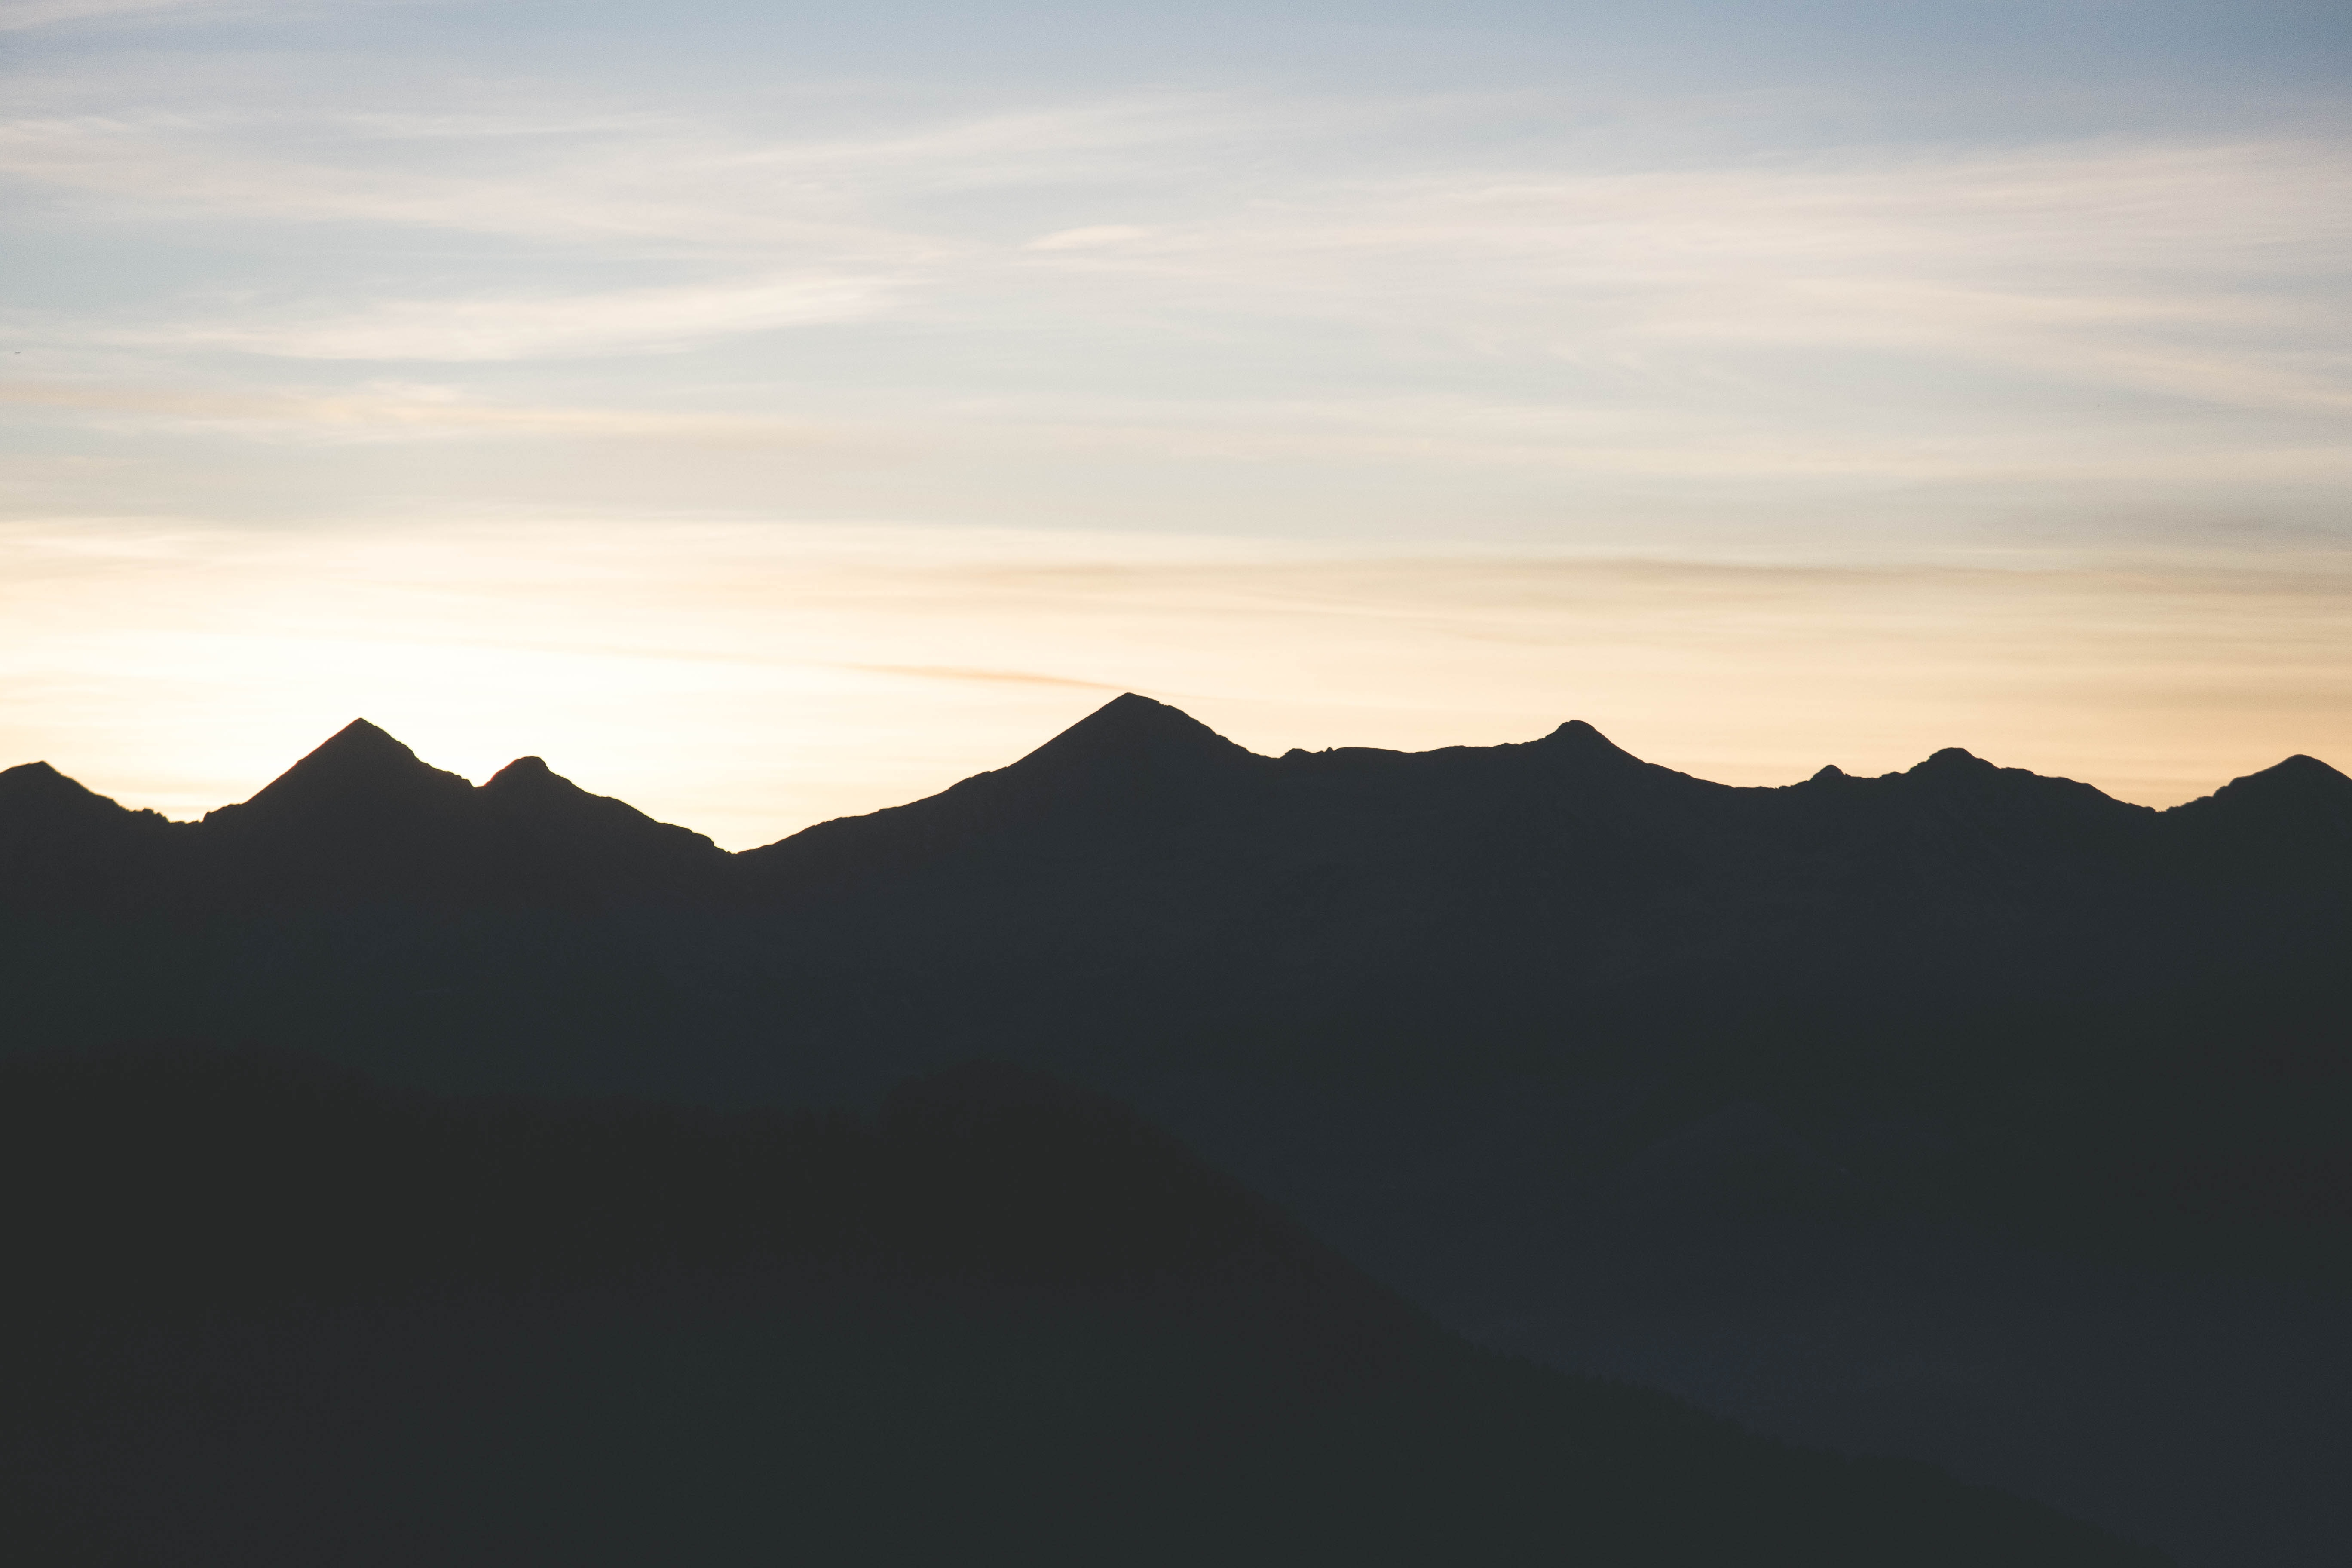 silhouette of mountain range during sunrise/sunset